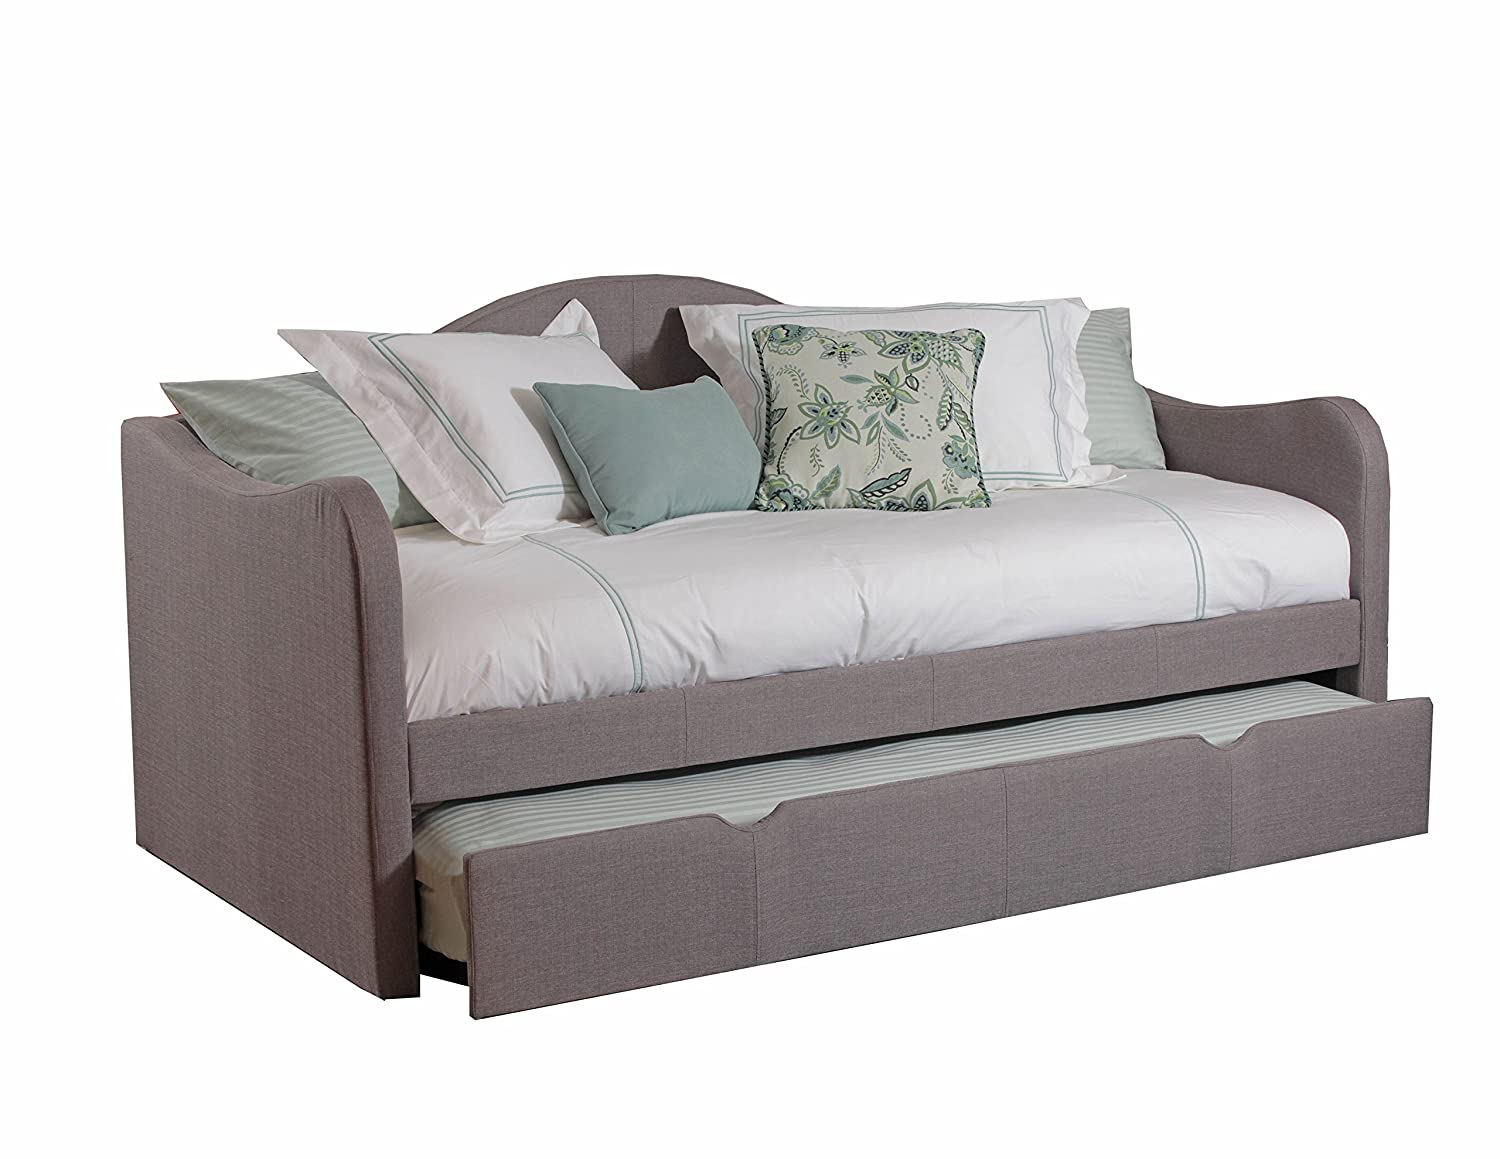 . amazoncom powell s upholstered day bed twin kitchen  dining